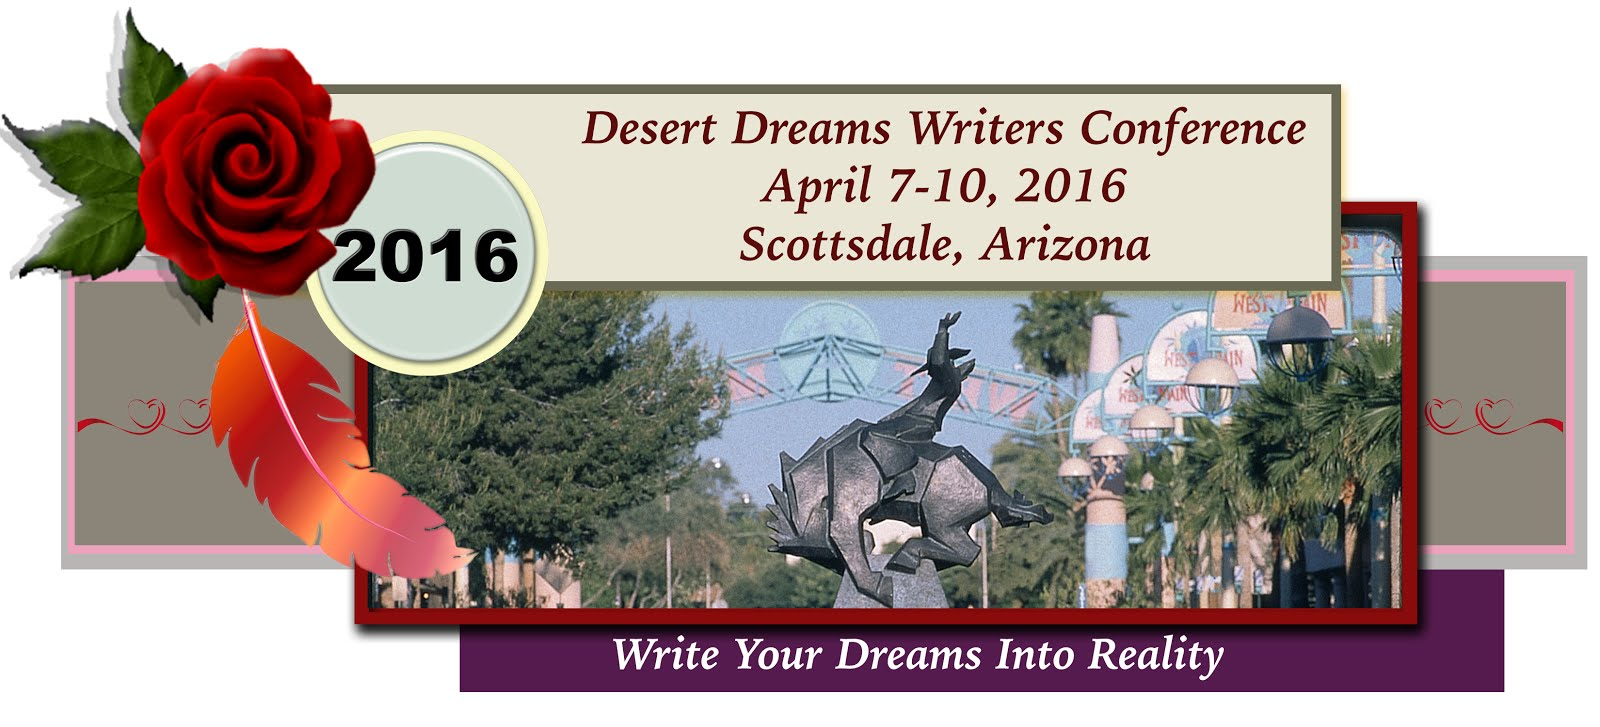 Desert Dreams 2016 Writers Conference